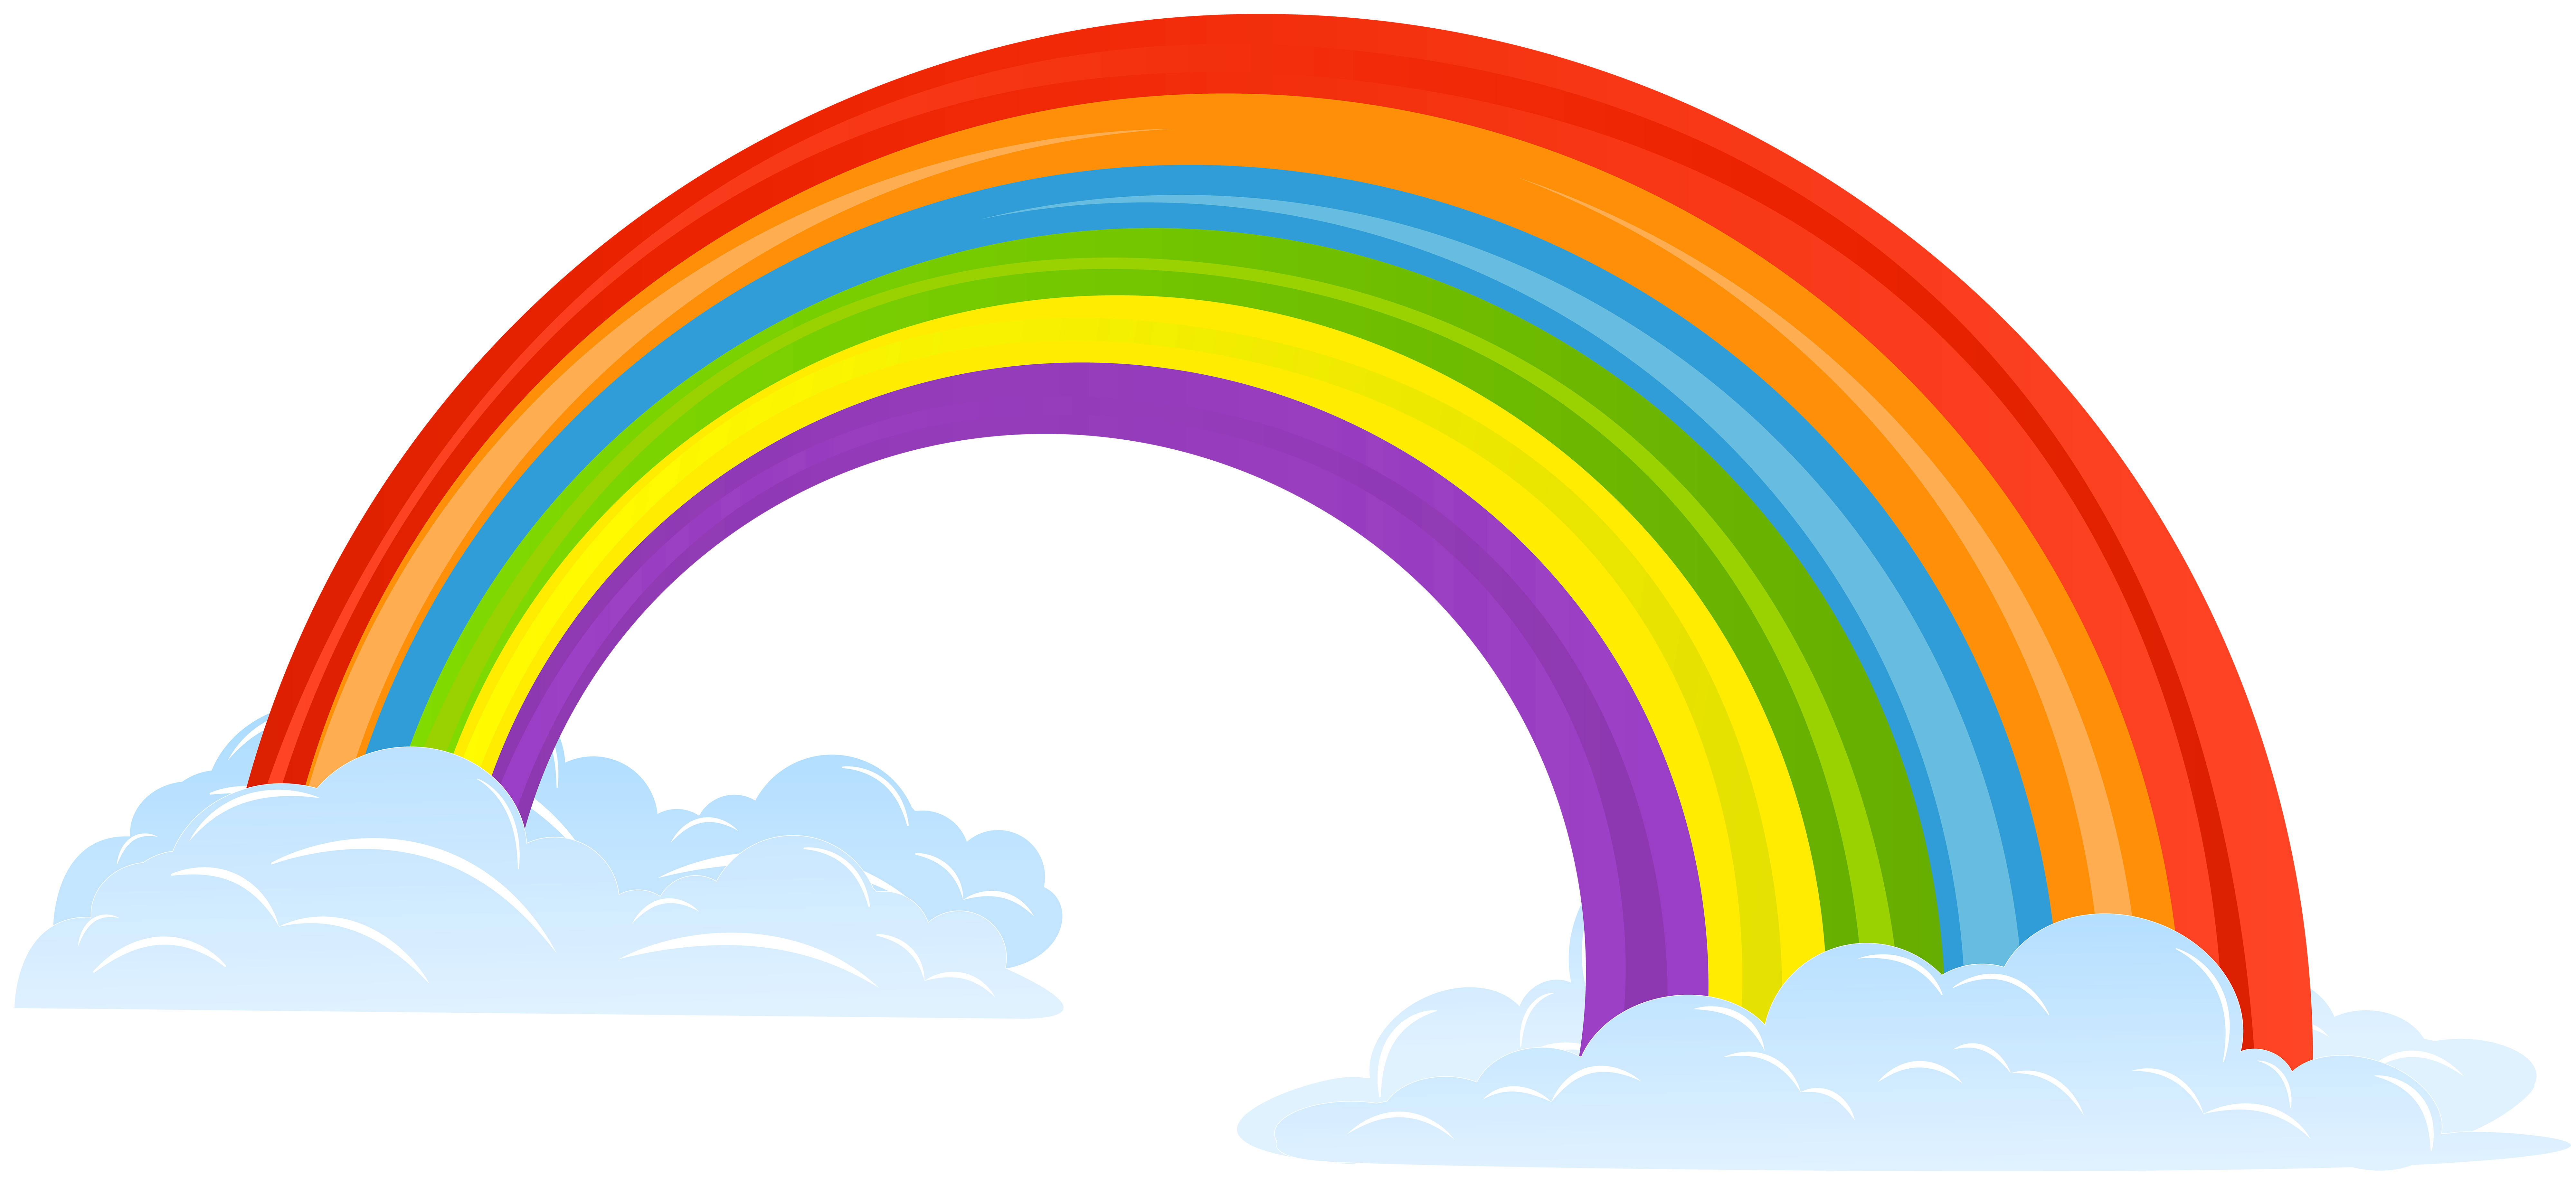 Clipart ratnbow graphic royalty free stock Rainbow with Clouds Clip Art Image | Gallery Yopriceville - High ... graphic royalty free stock